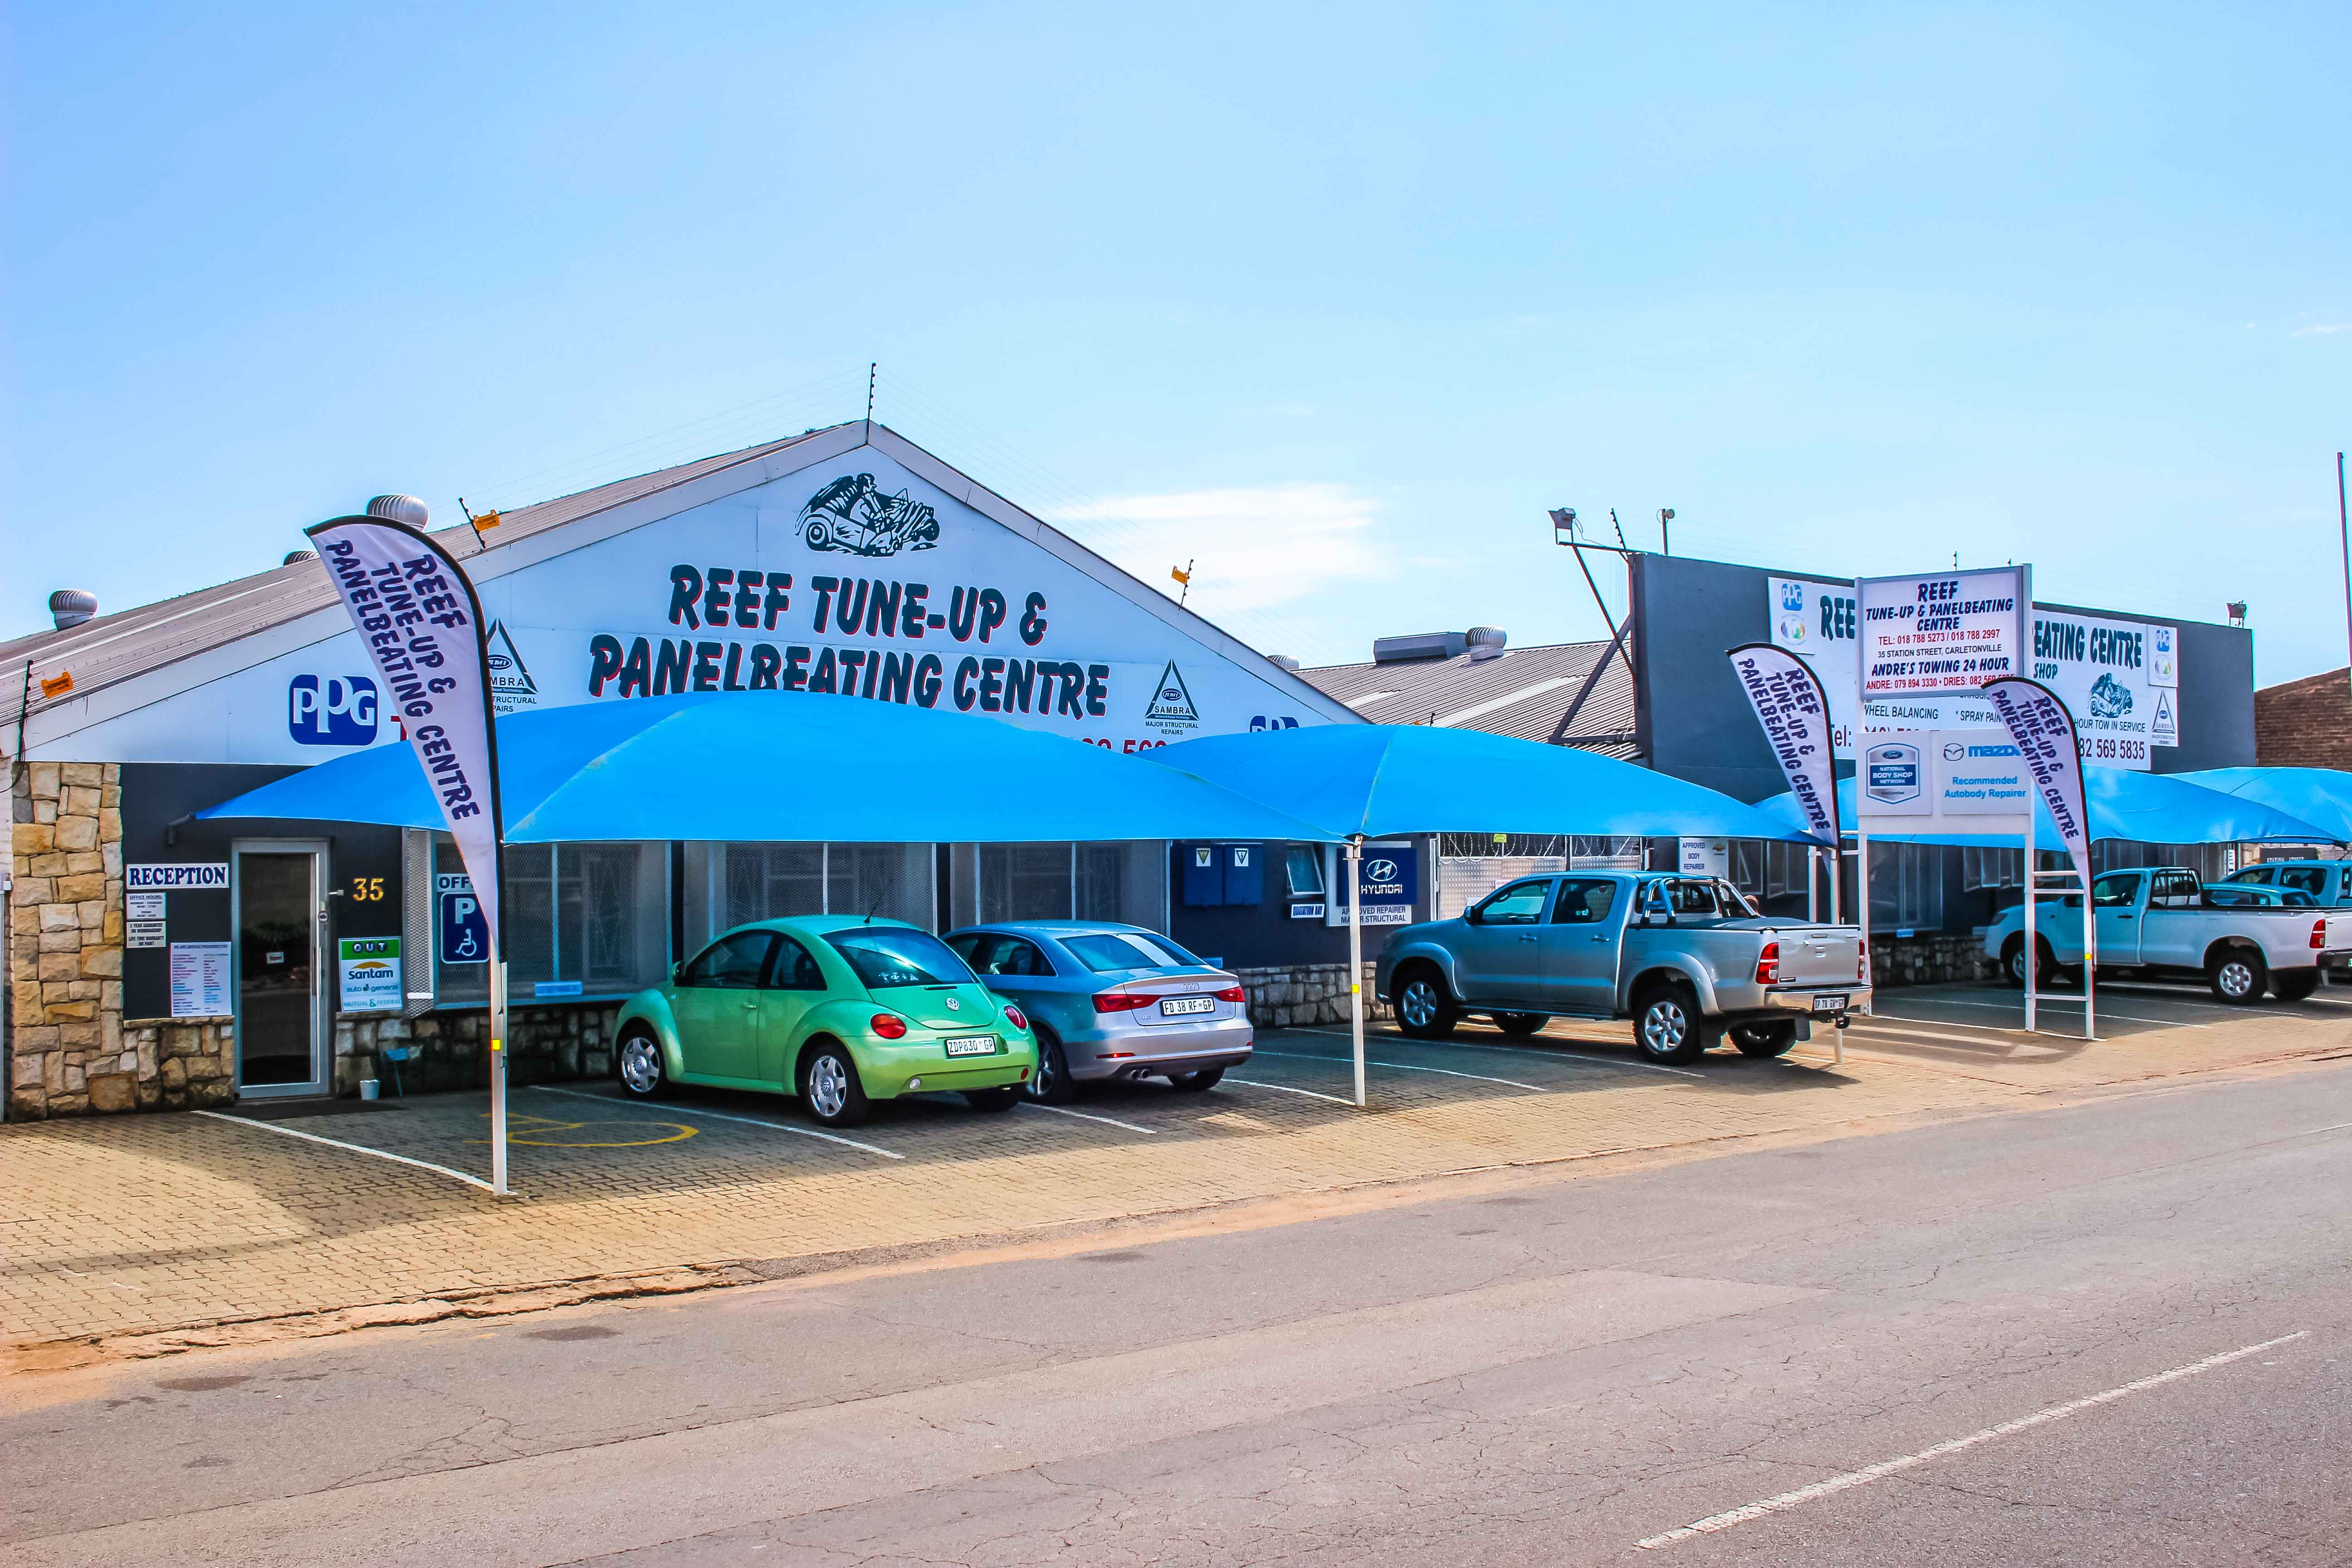 Reef Tune-Up and Panelbeating Centre